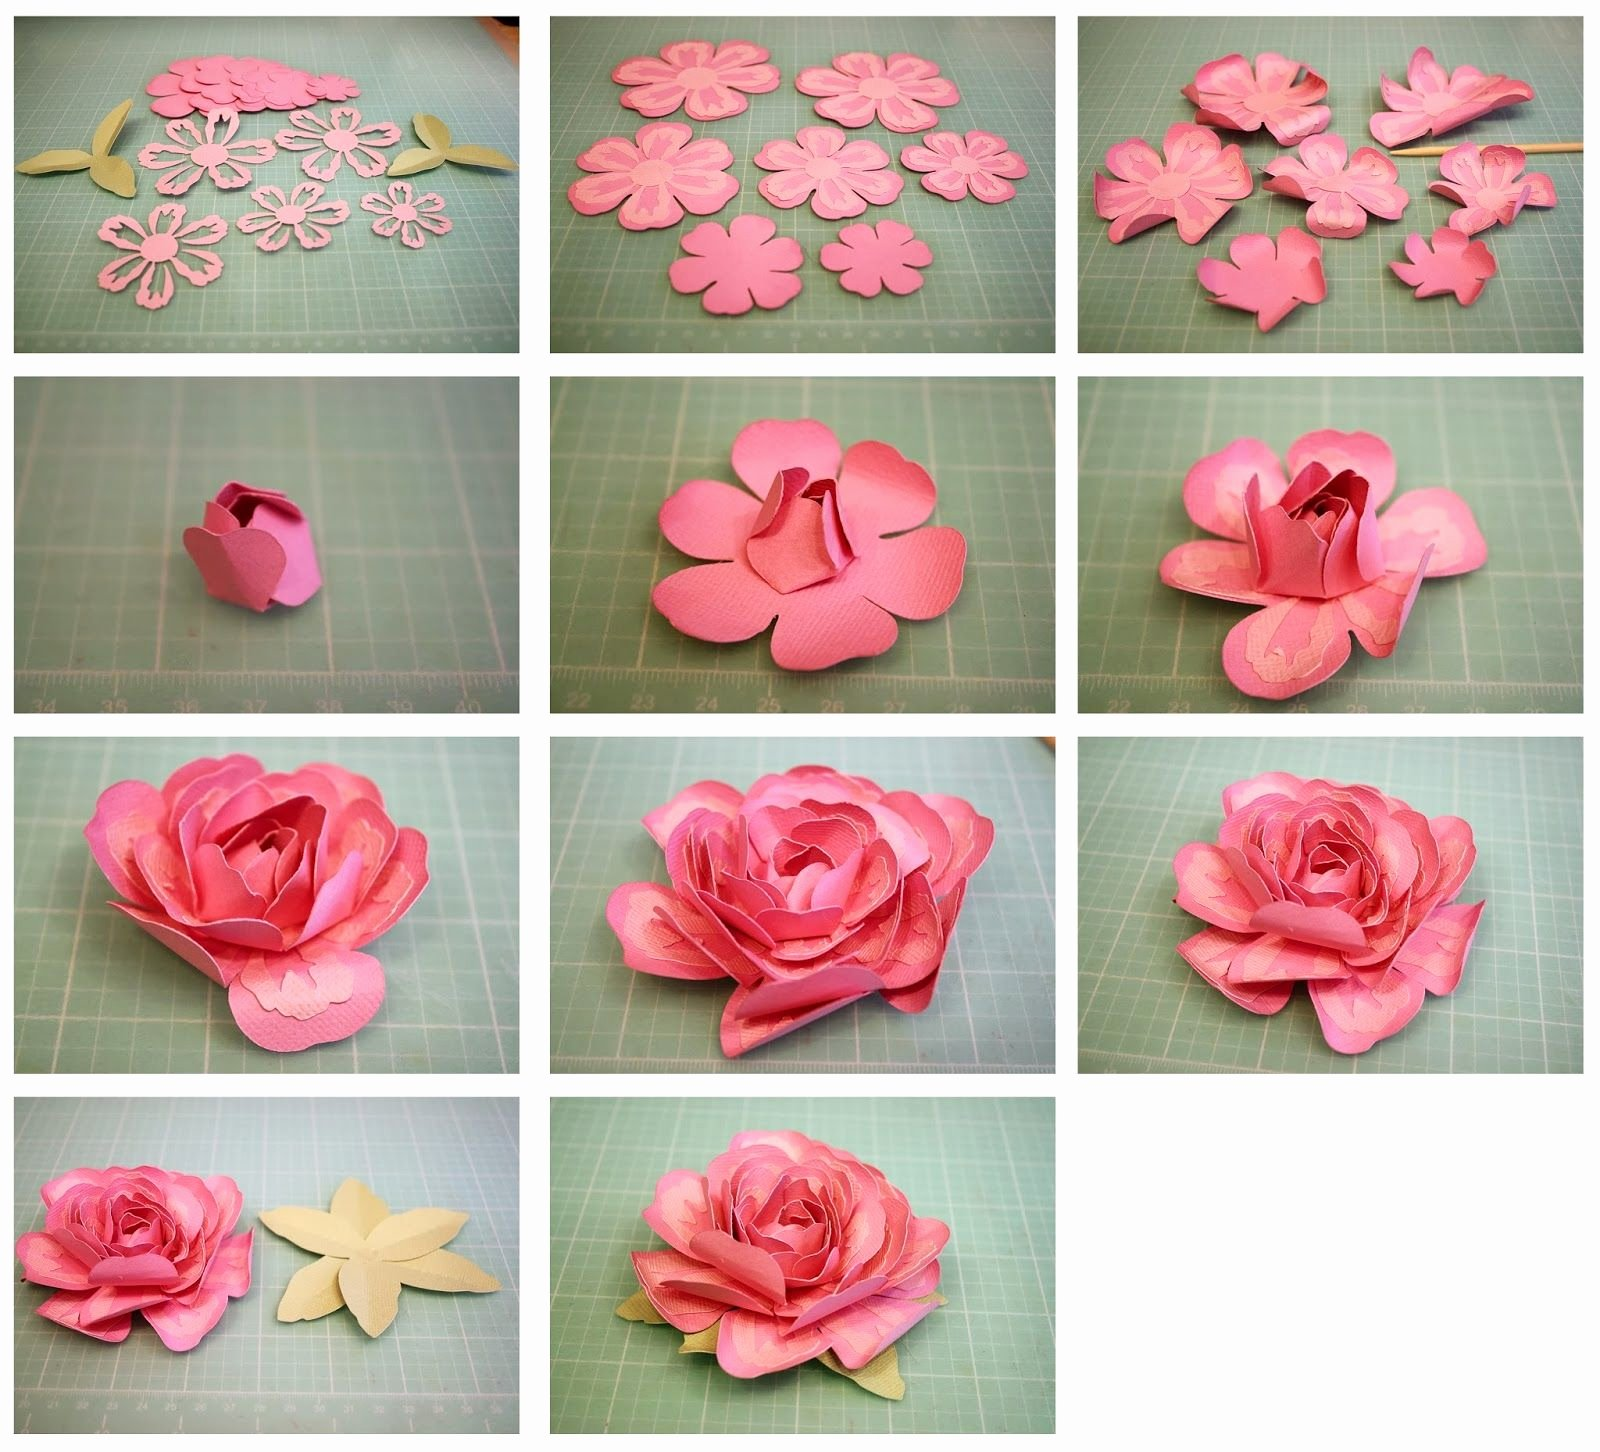 3d Paper Flower Template Elegant Instructions for 3d Layered Rose From the Sil Store